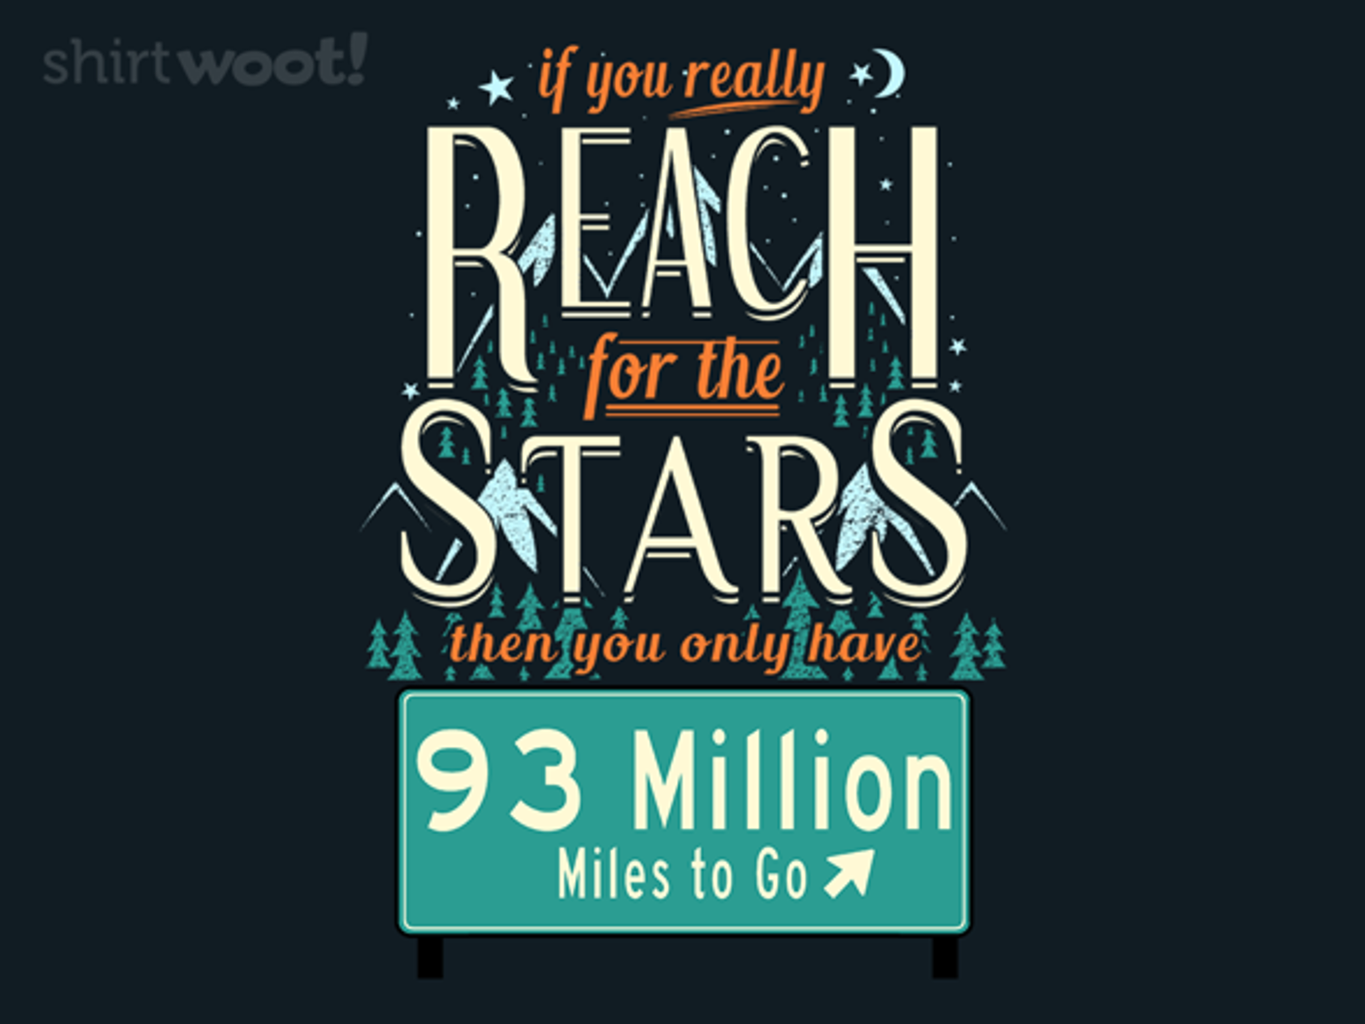 Woot!: Out of Reach